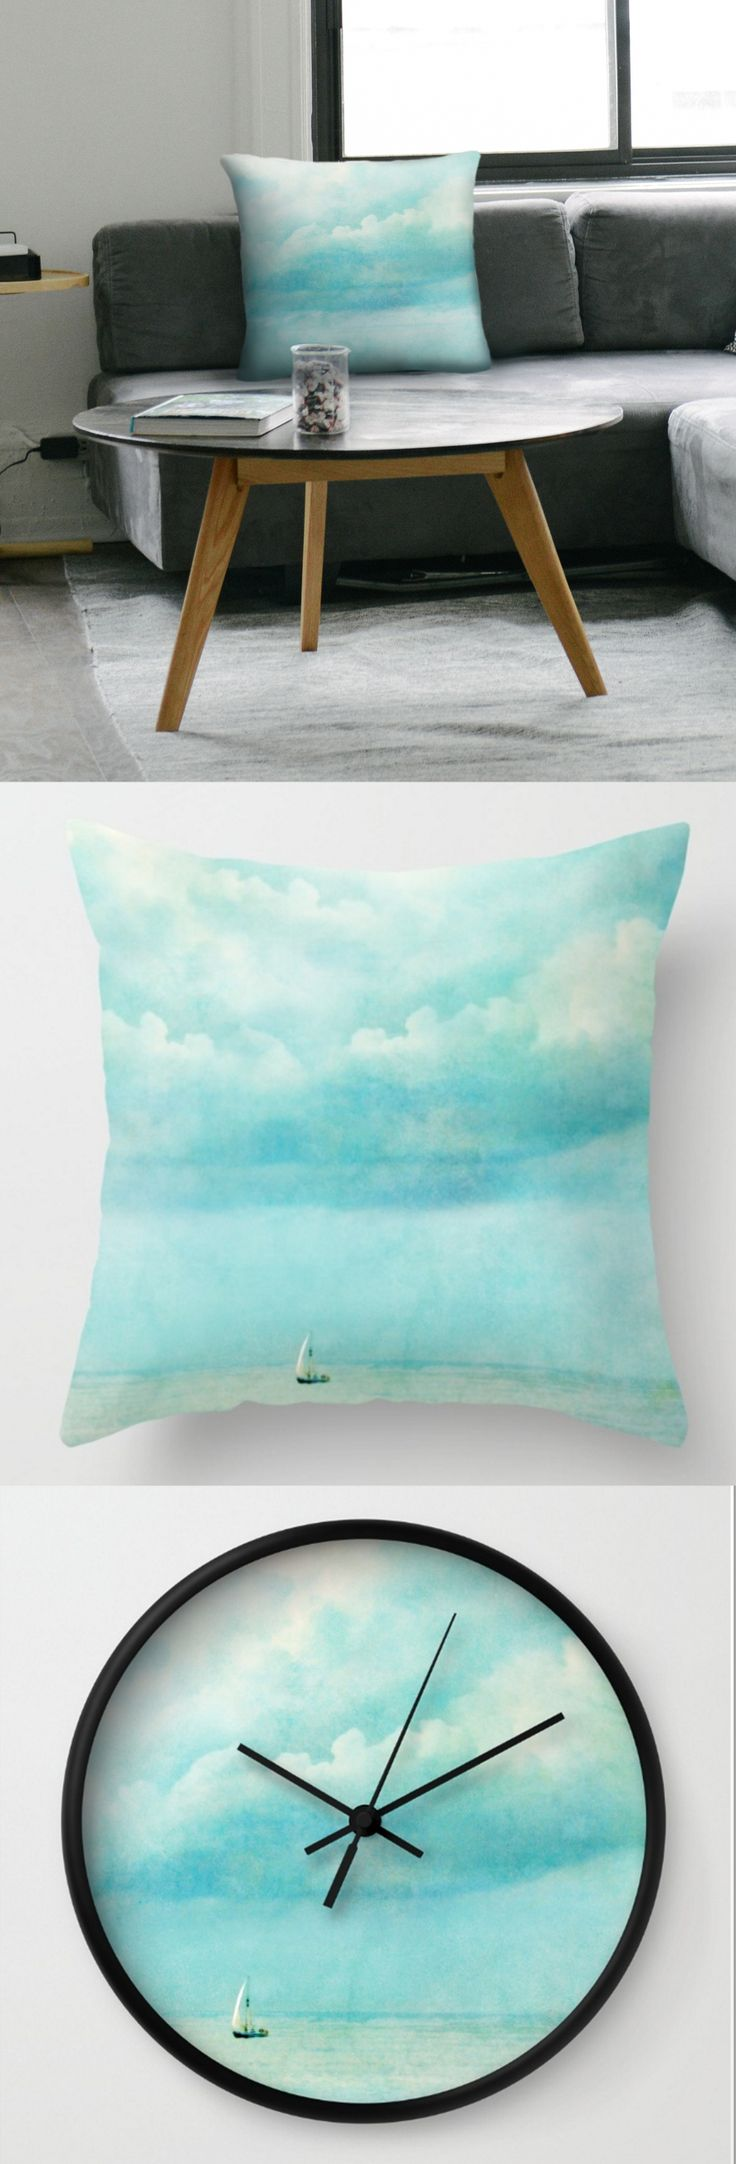 """new work - """"loner"""" now available in our store """"agat&marek"""" at #society6  http://bit.ly/1Wt2dDf  #sea #holiday #clouds #blue #sailing"""